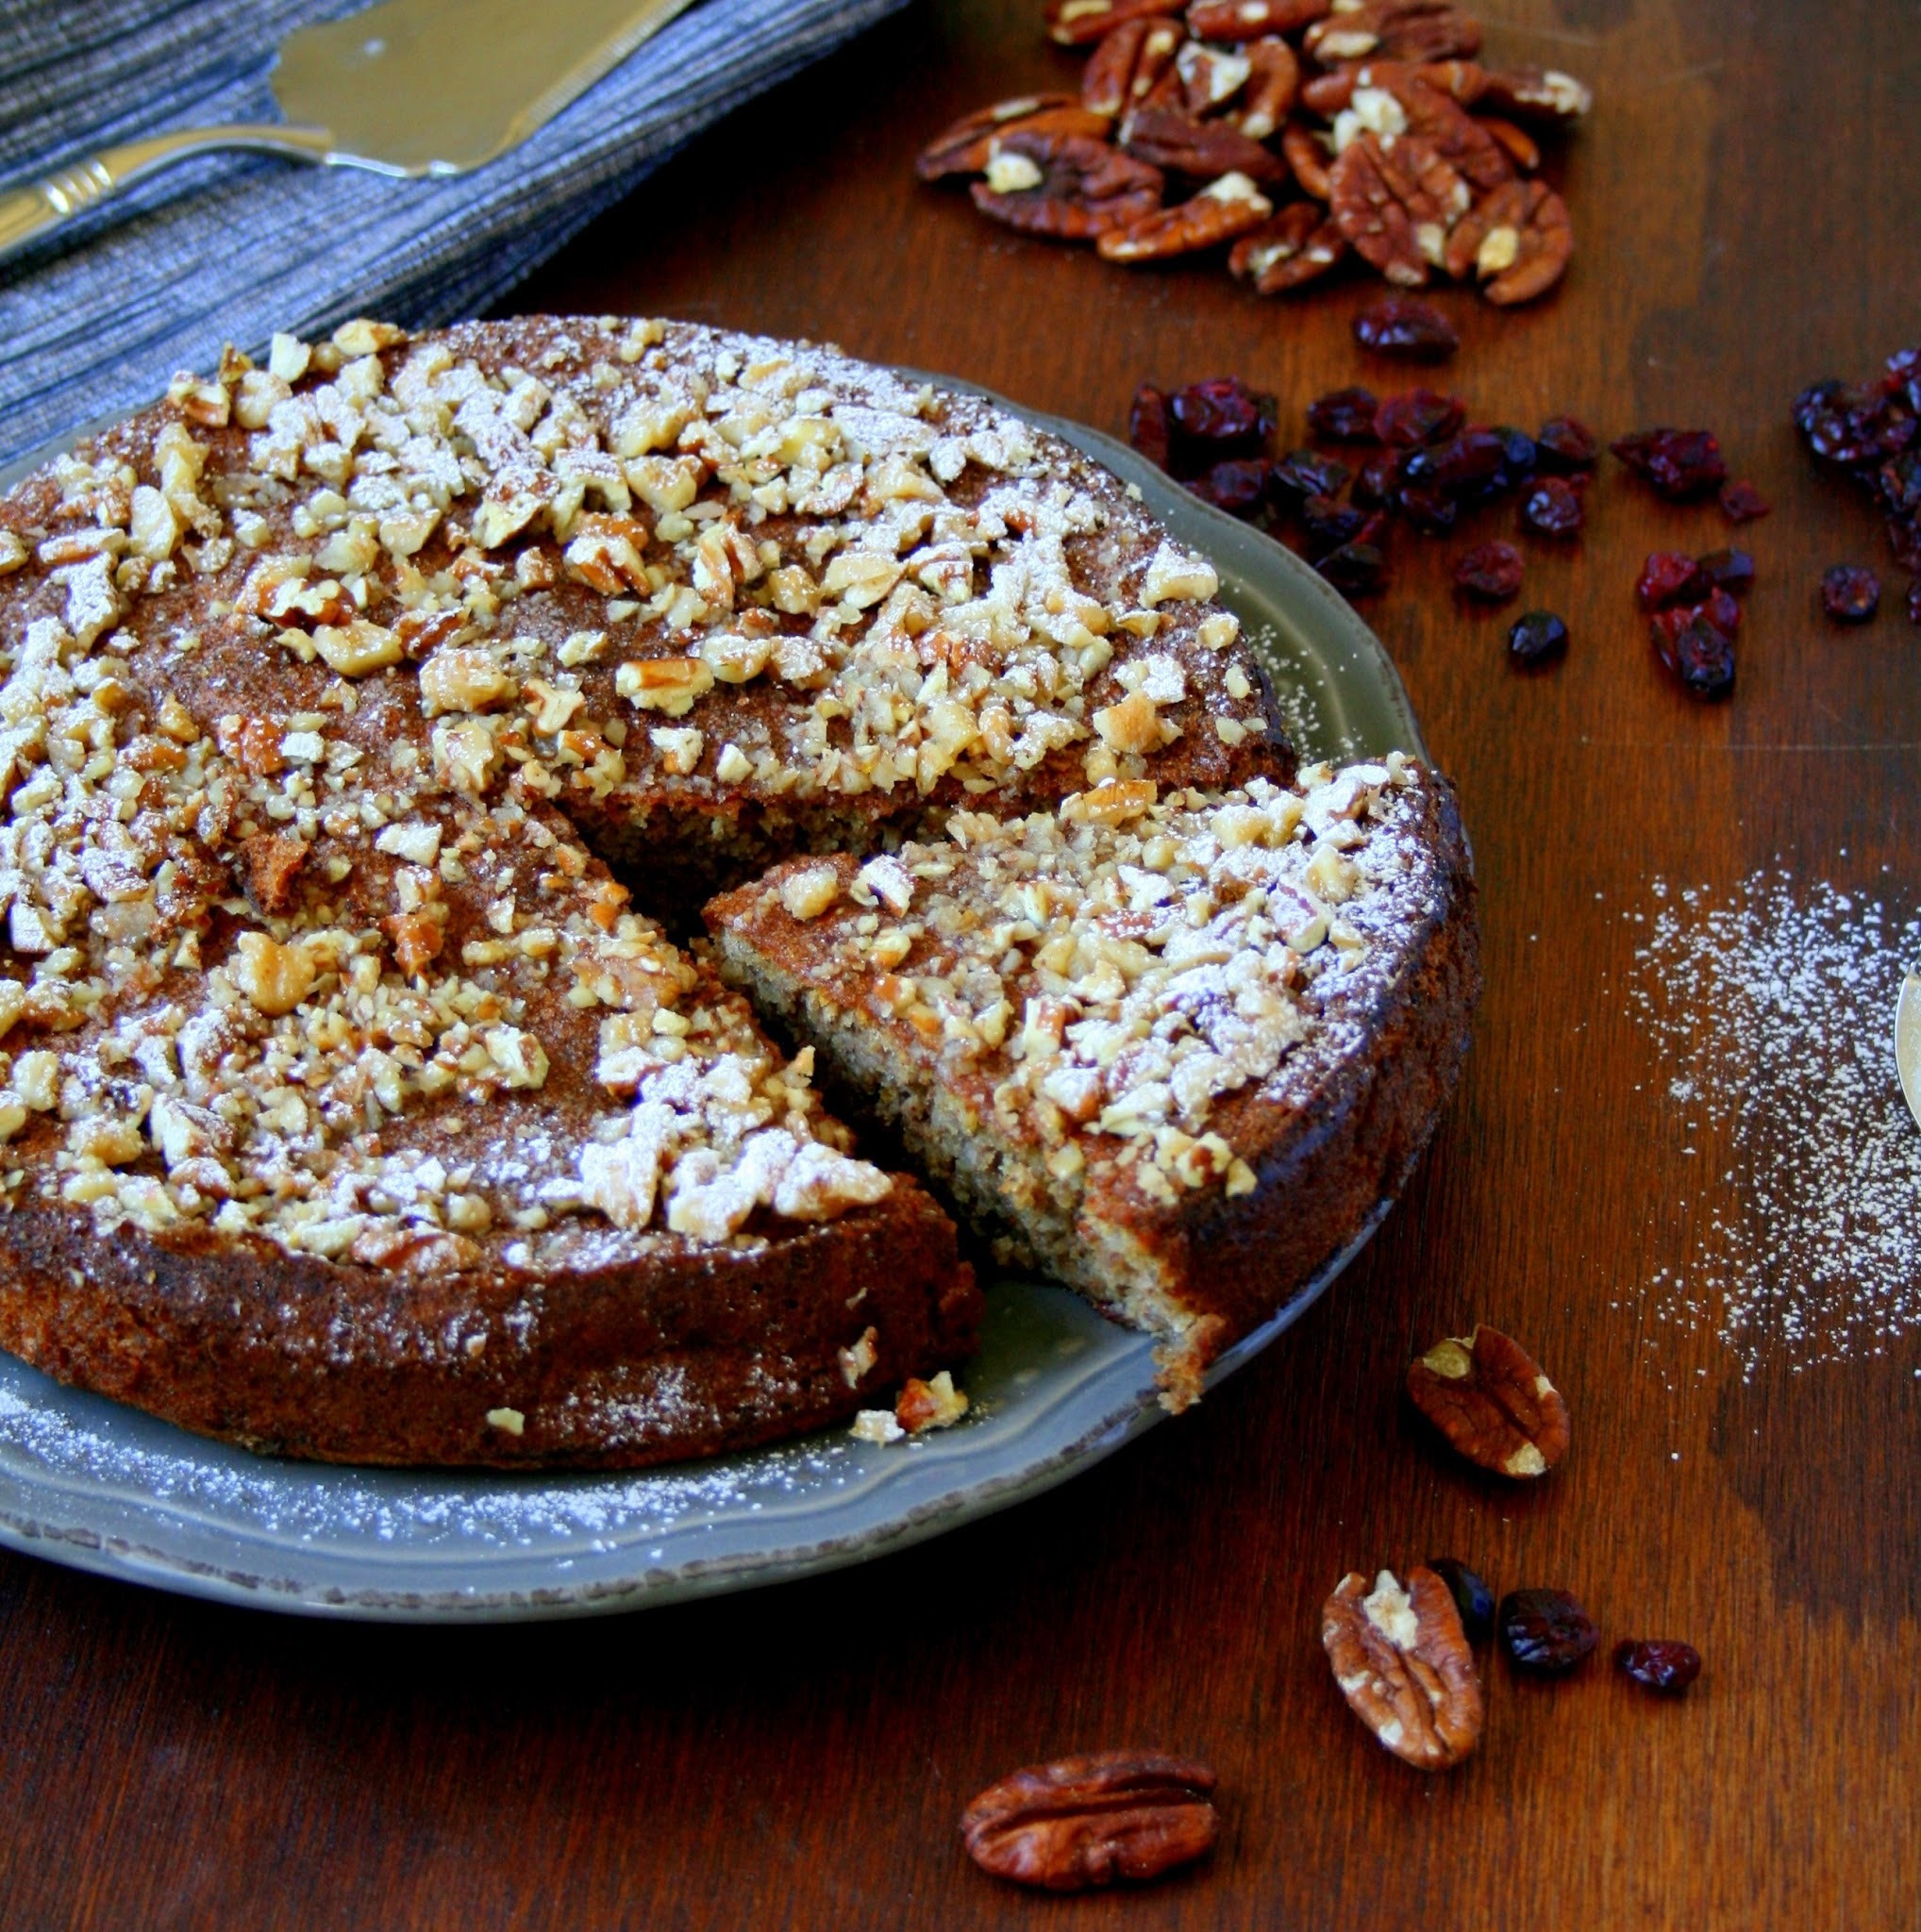 Walnut, Pecan & Cranberry Cake